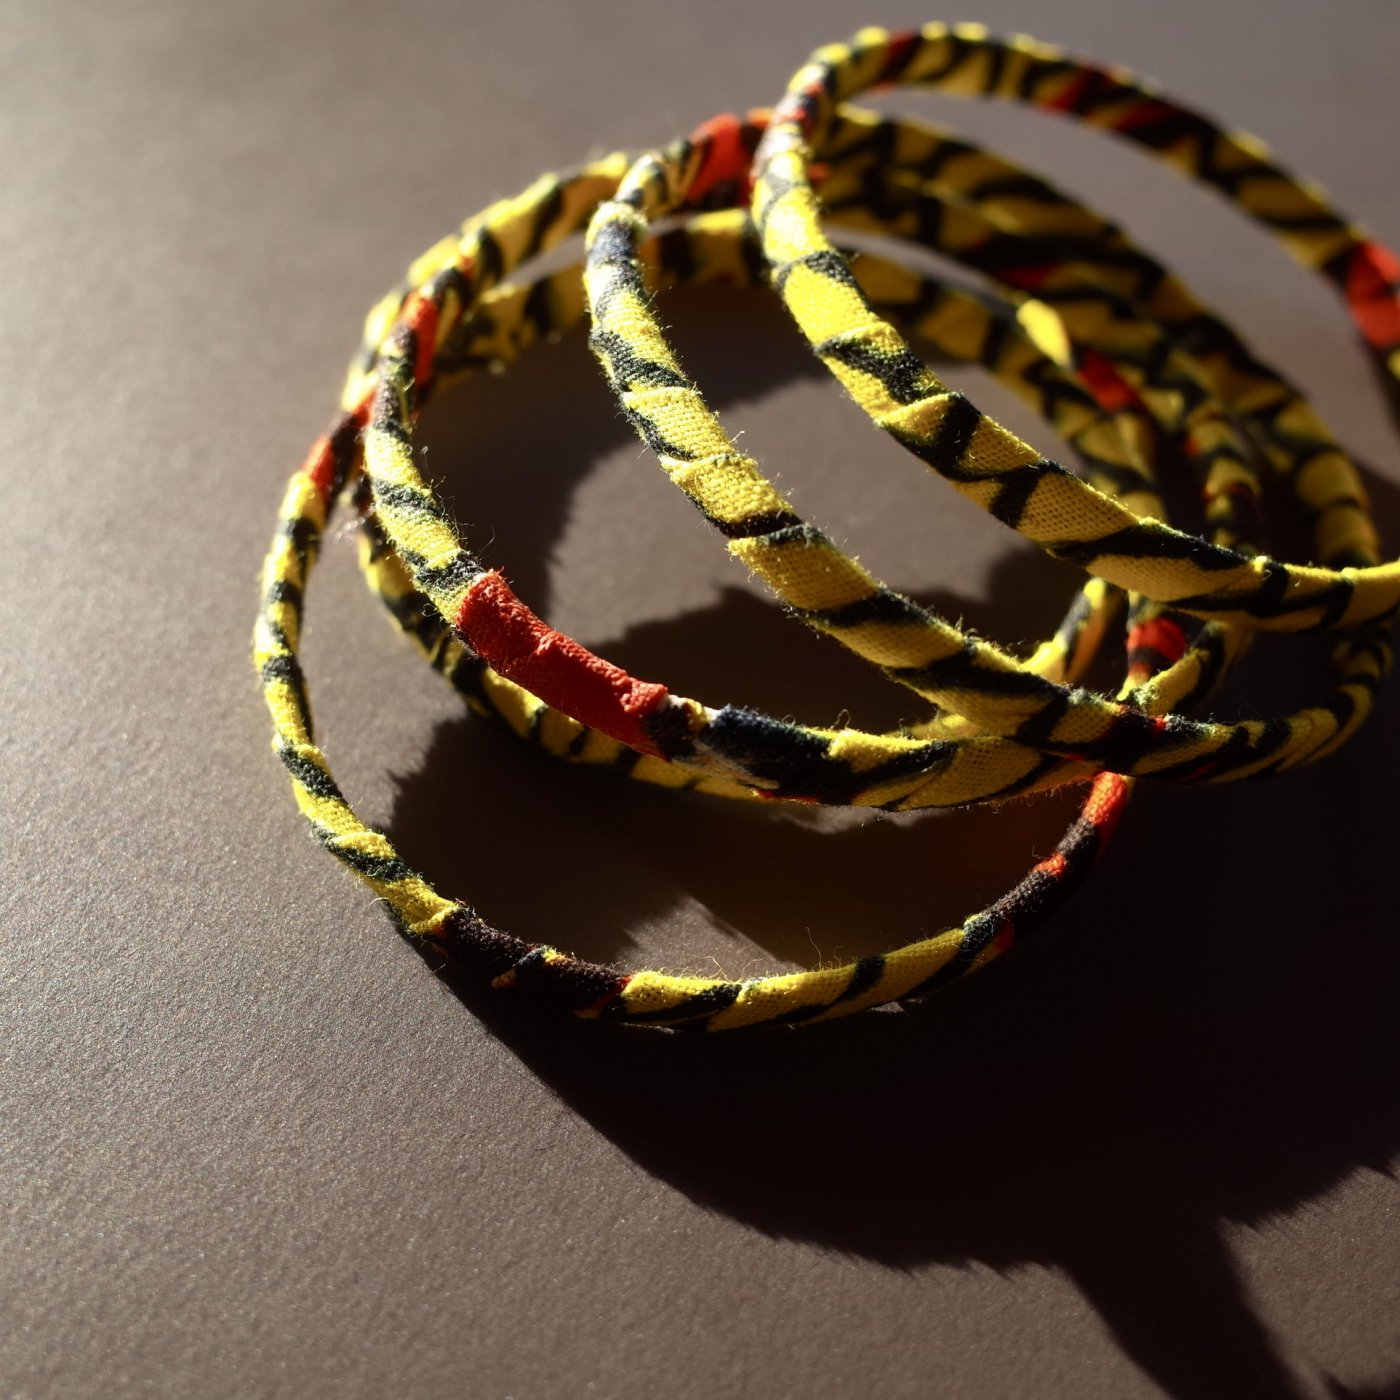 <img class='new_mark_img1' src='//img.shop-pro.jp/img/new/icons5.gif' style='border:none;display:inline;margin:0px;padding:0px;width:auto;' />AFRICAN PRINT BRACELET 1PIECE-HANDMADE BY SENEGALESE-